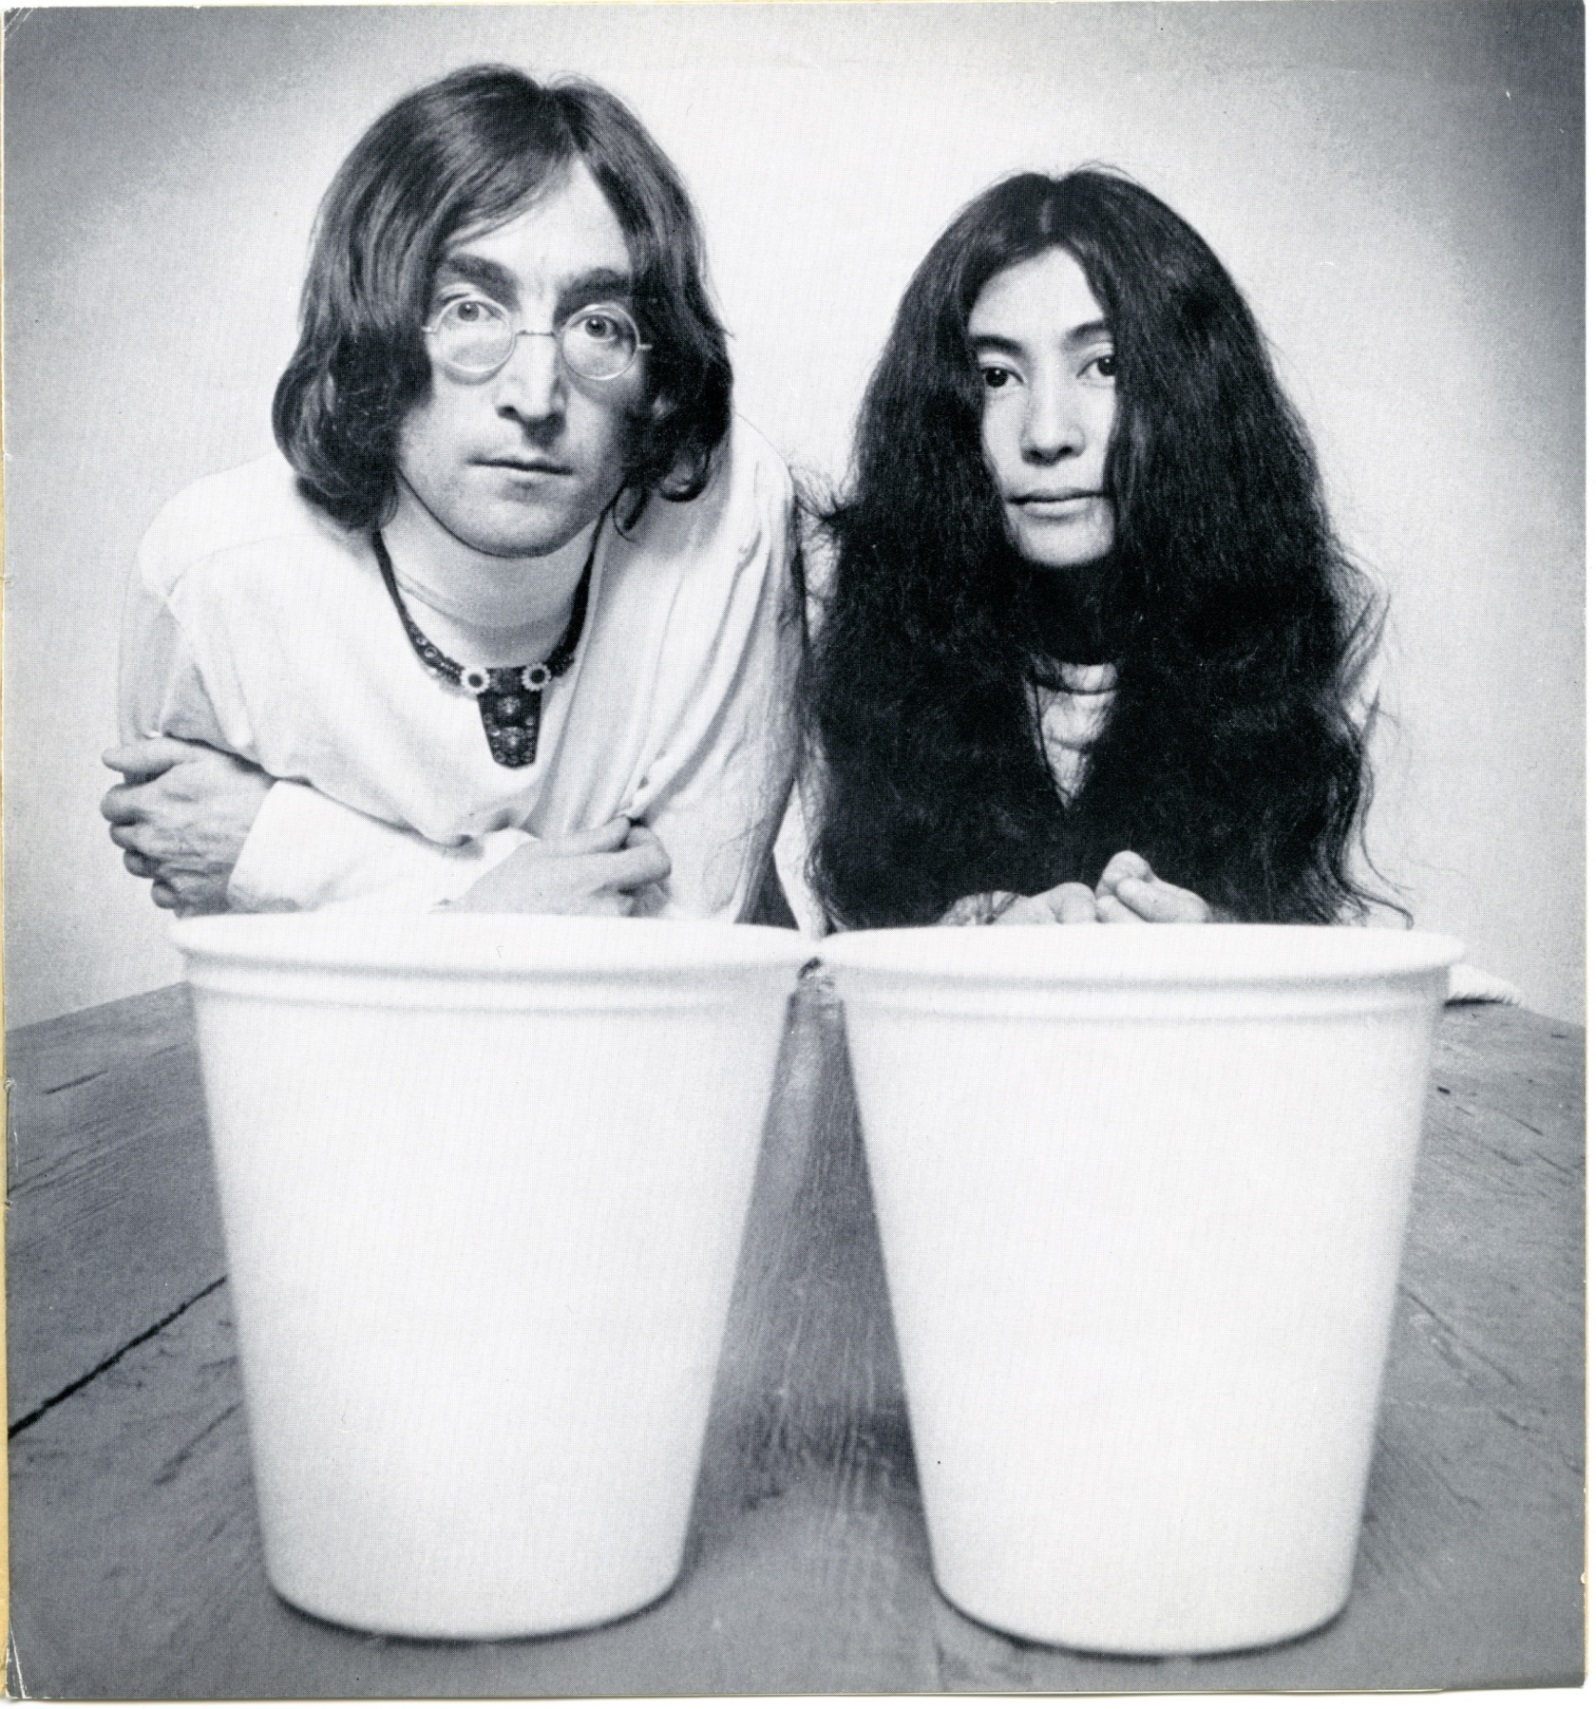 Museum of Liverpool: Double Fantasy - John & Yoko